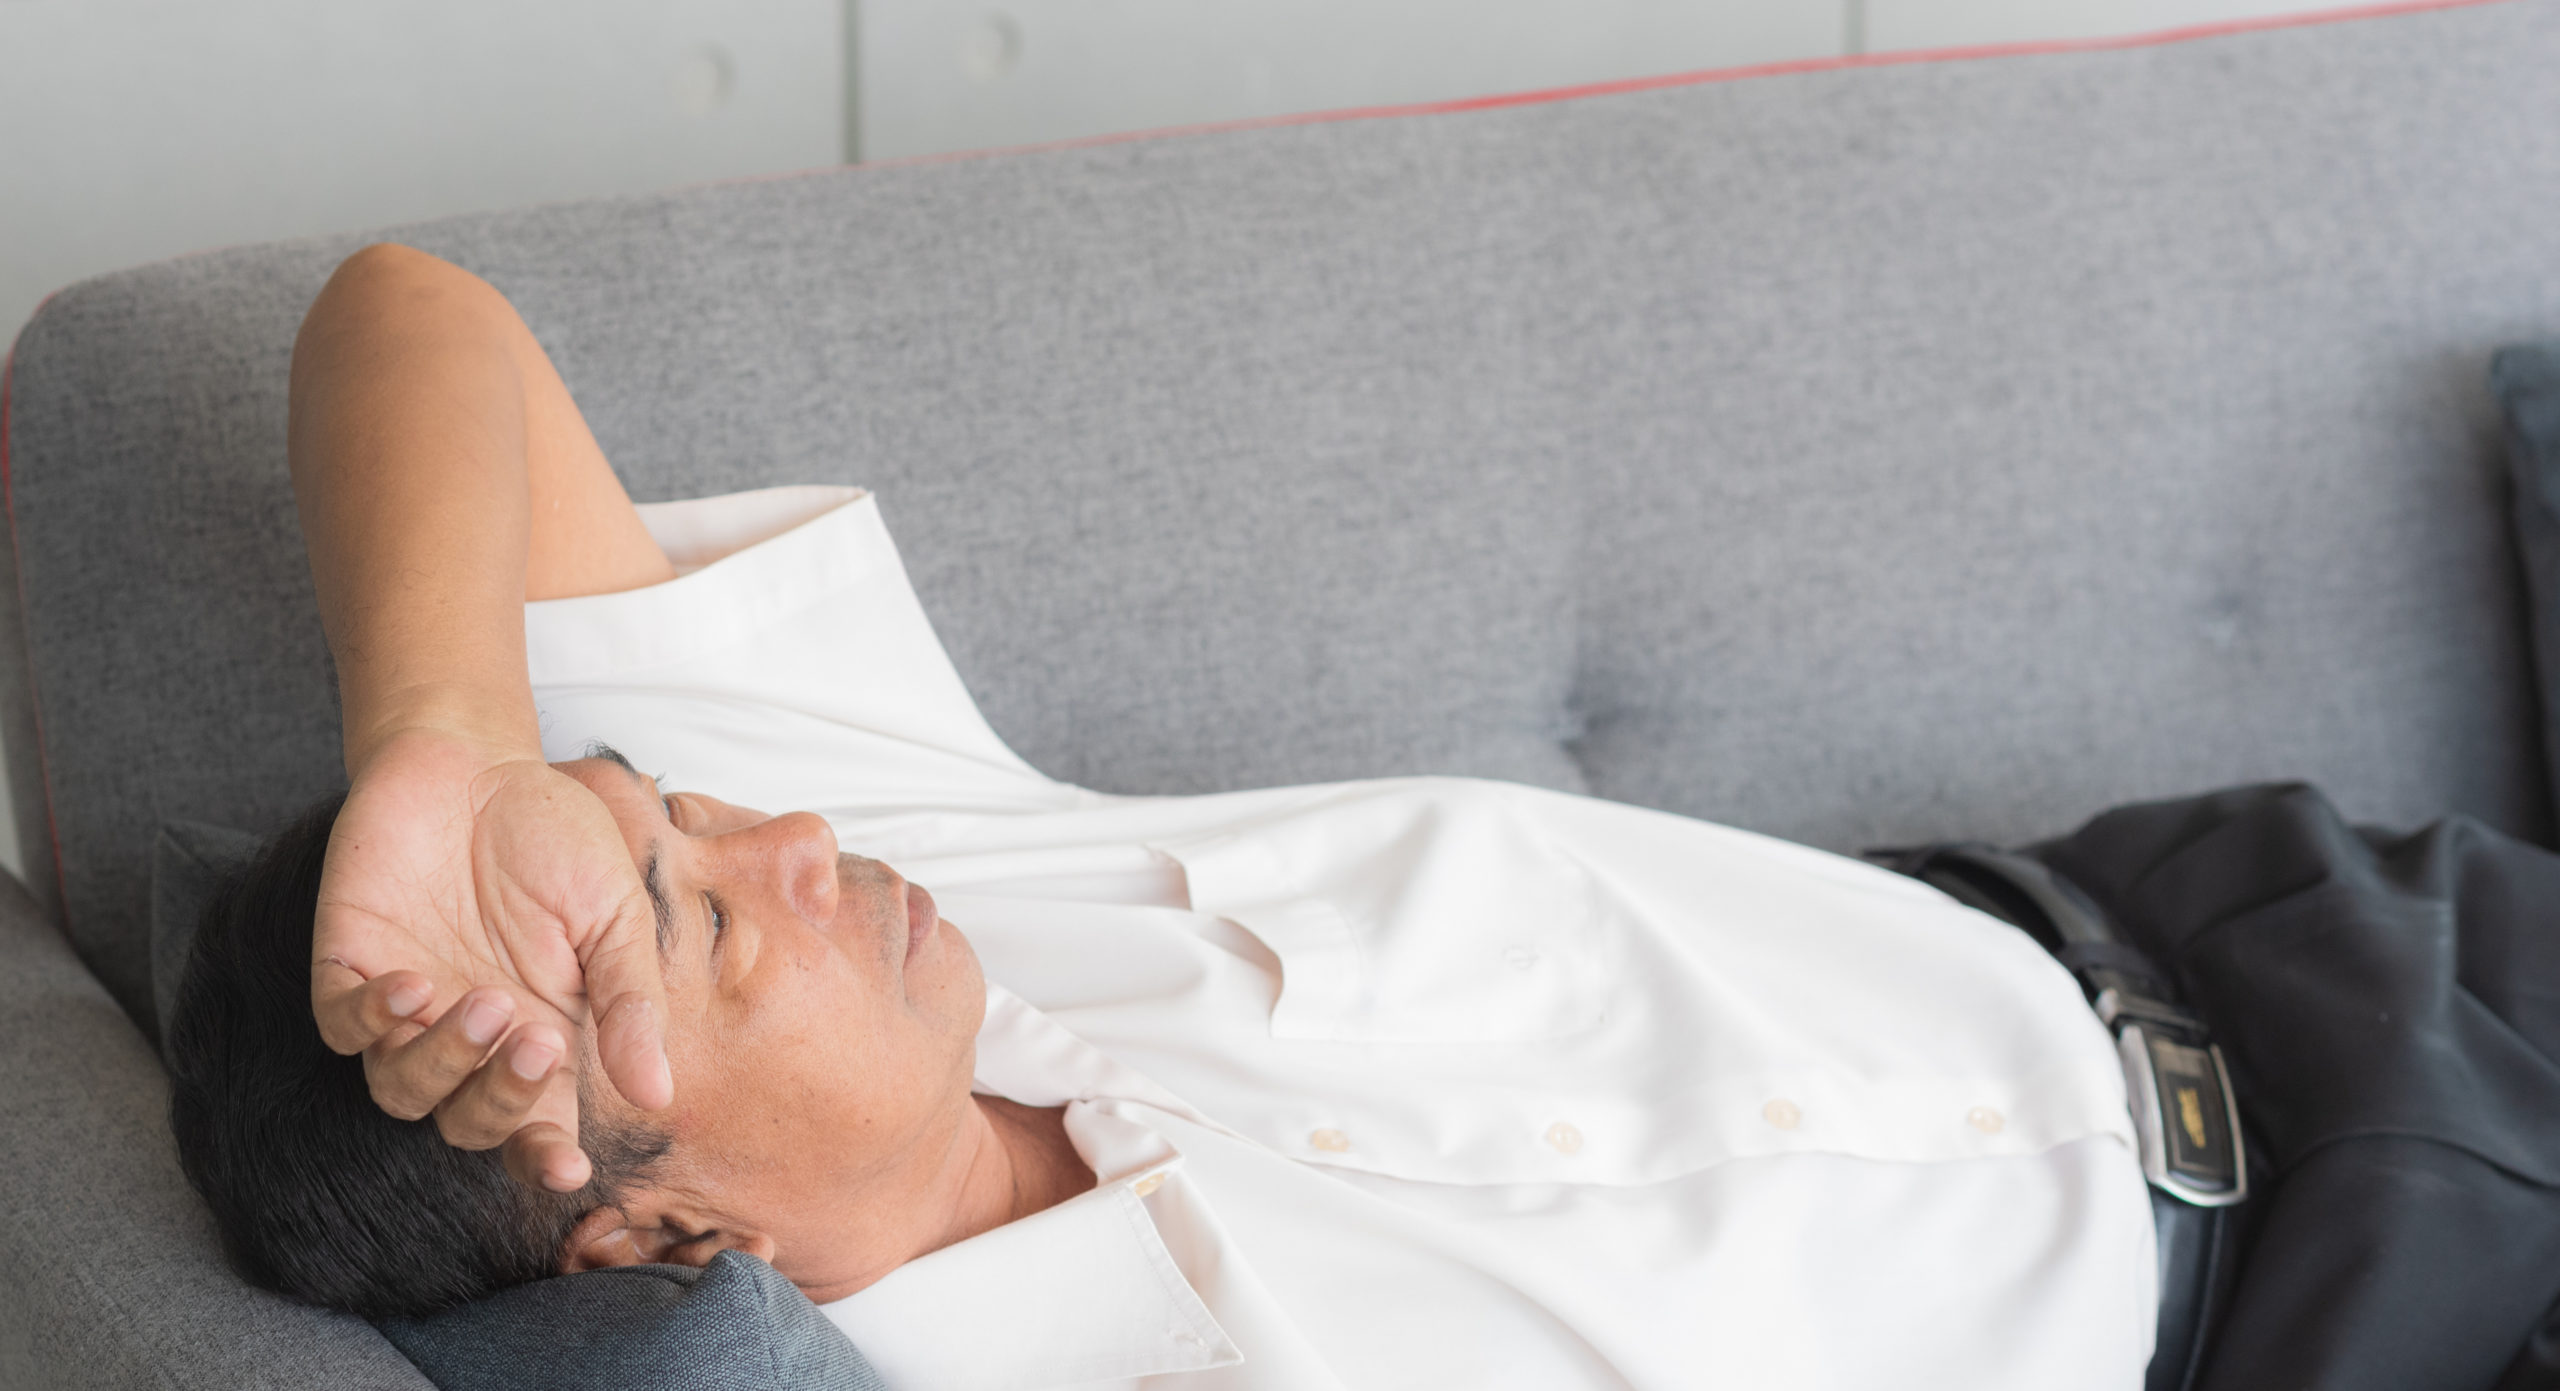 Senior Asian man sleeping on couch feeling sick and migraine from tired and health problems